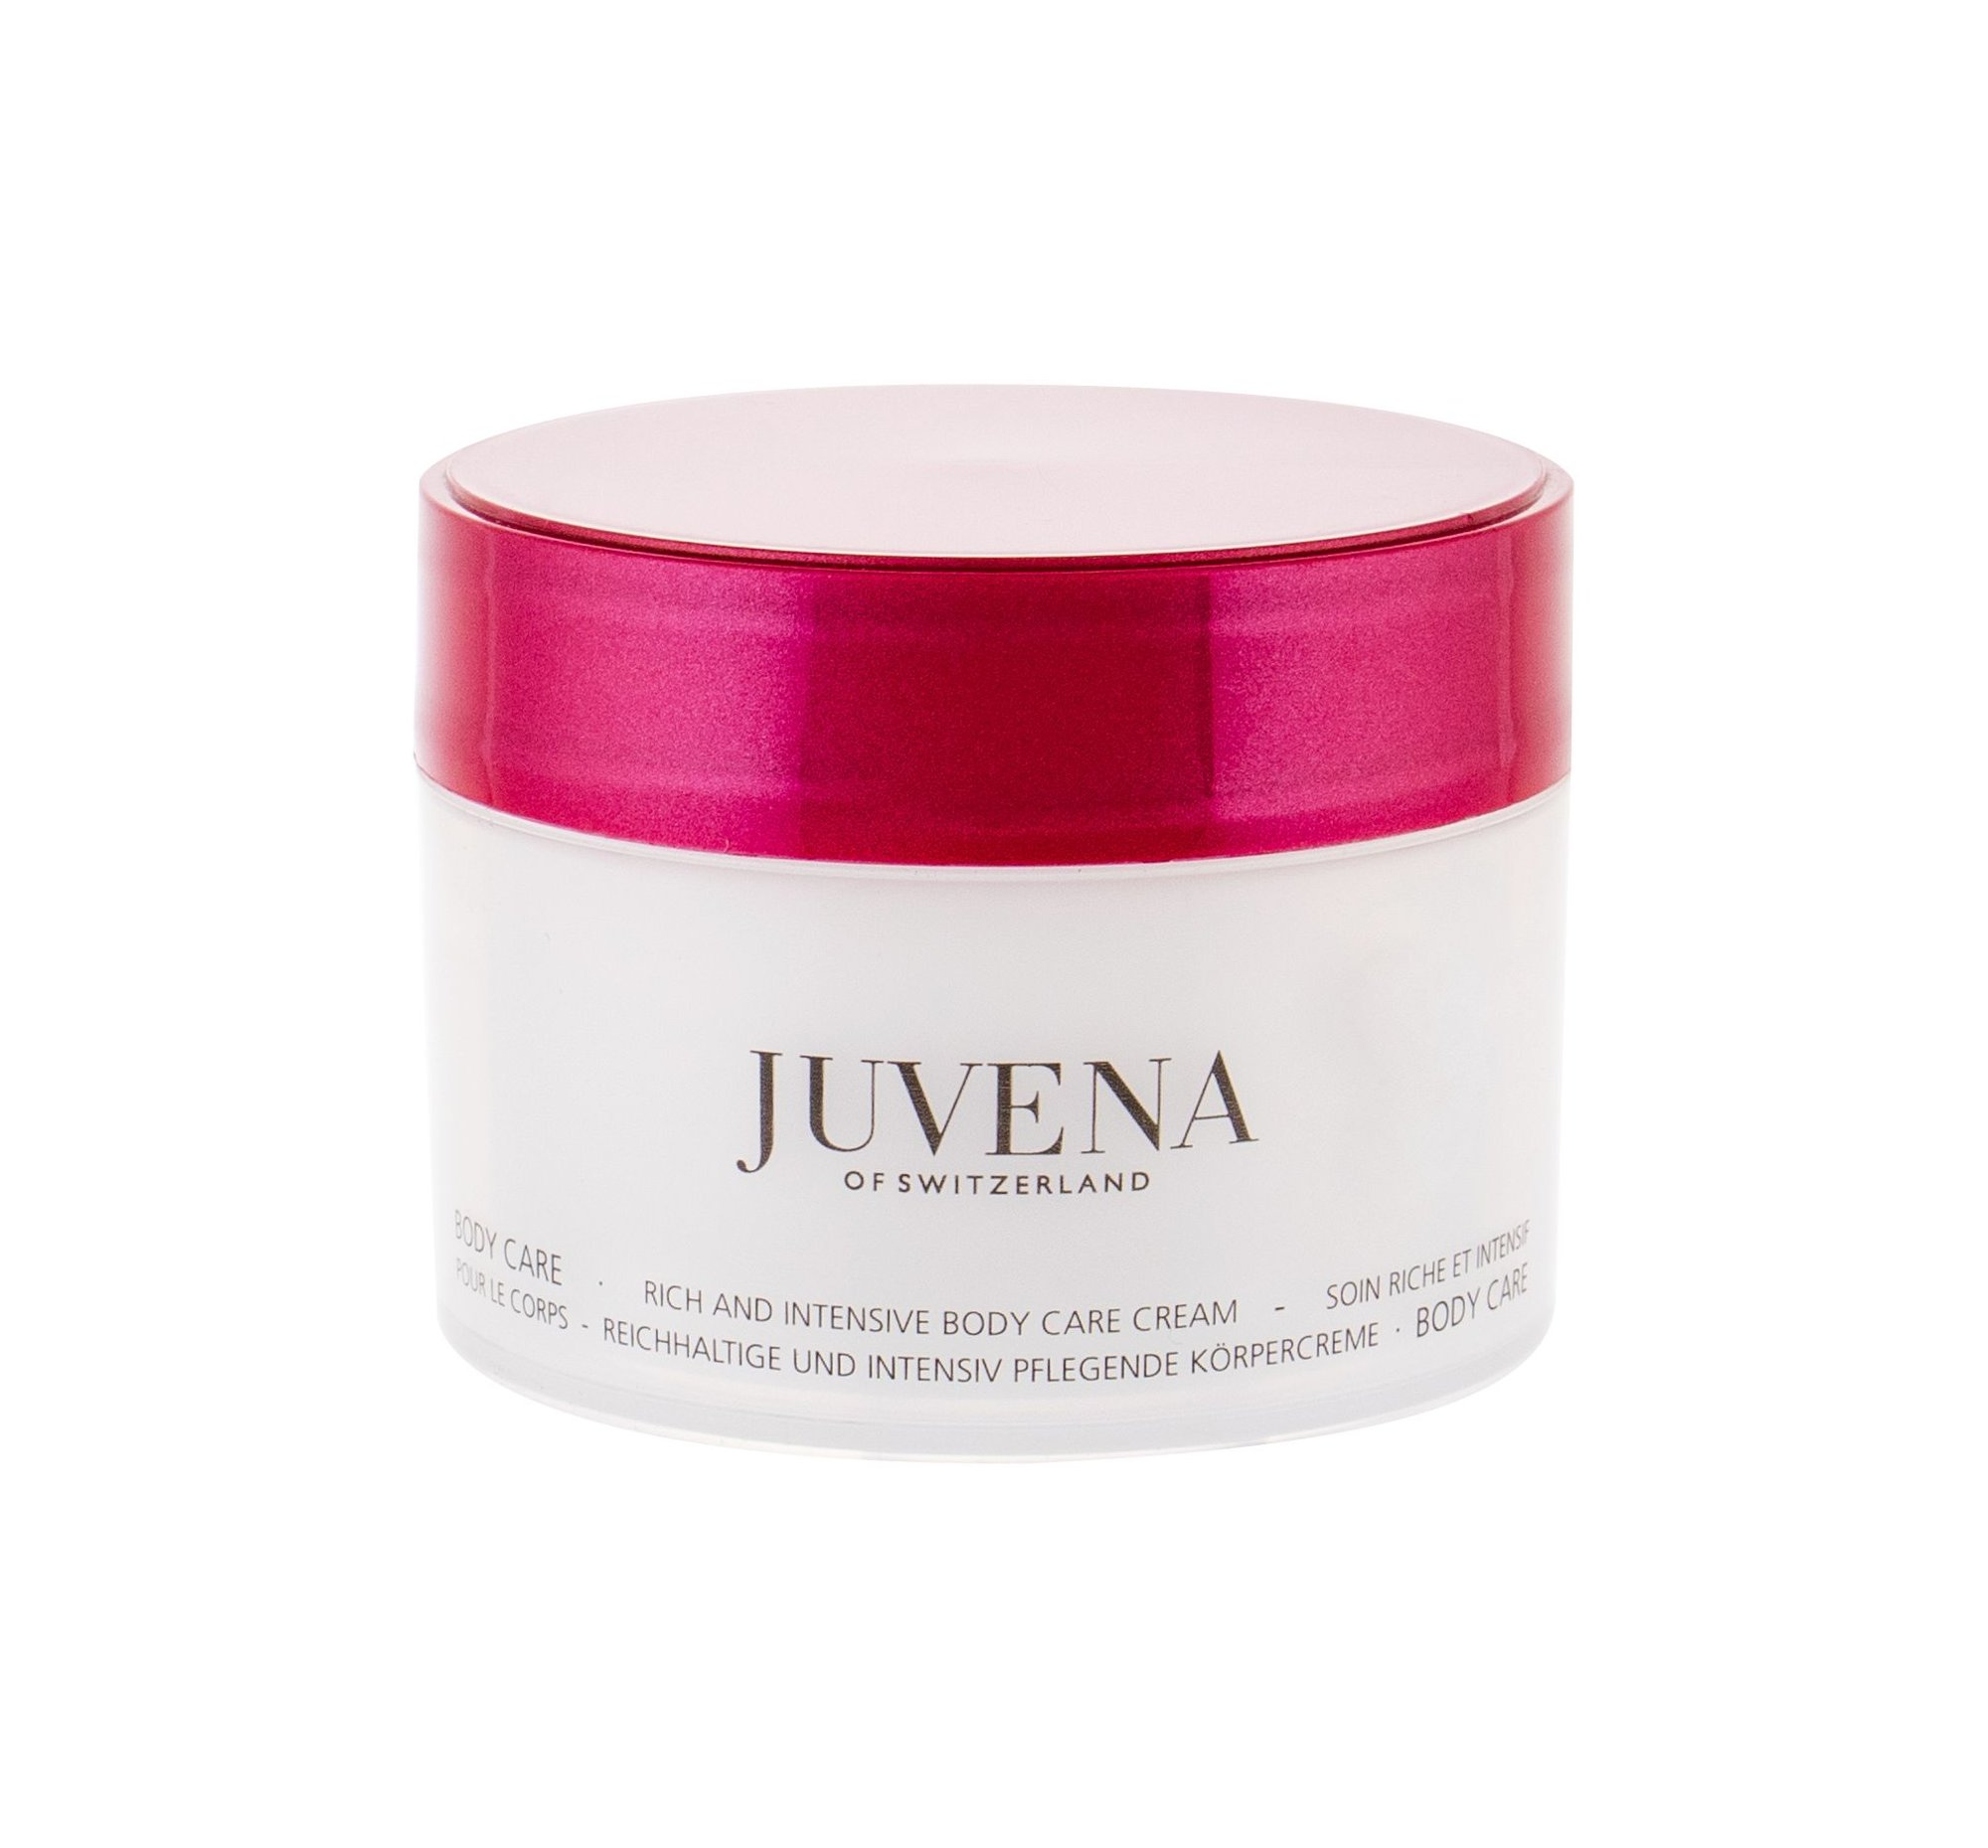 Juvena Body Care Body Cream 200ml